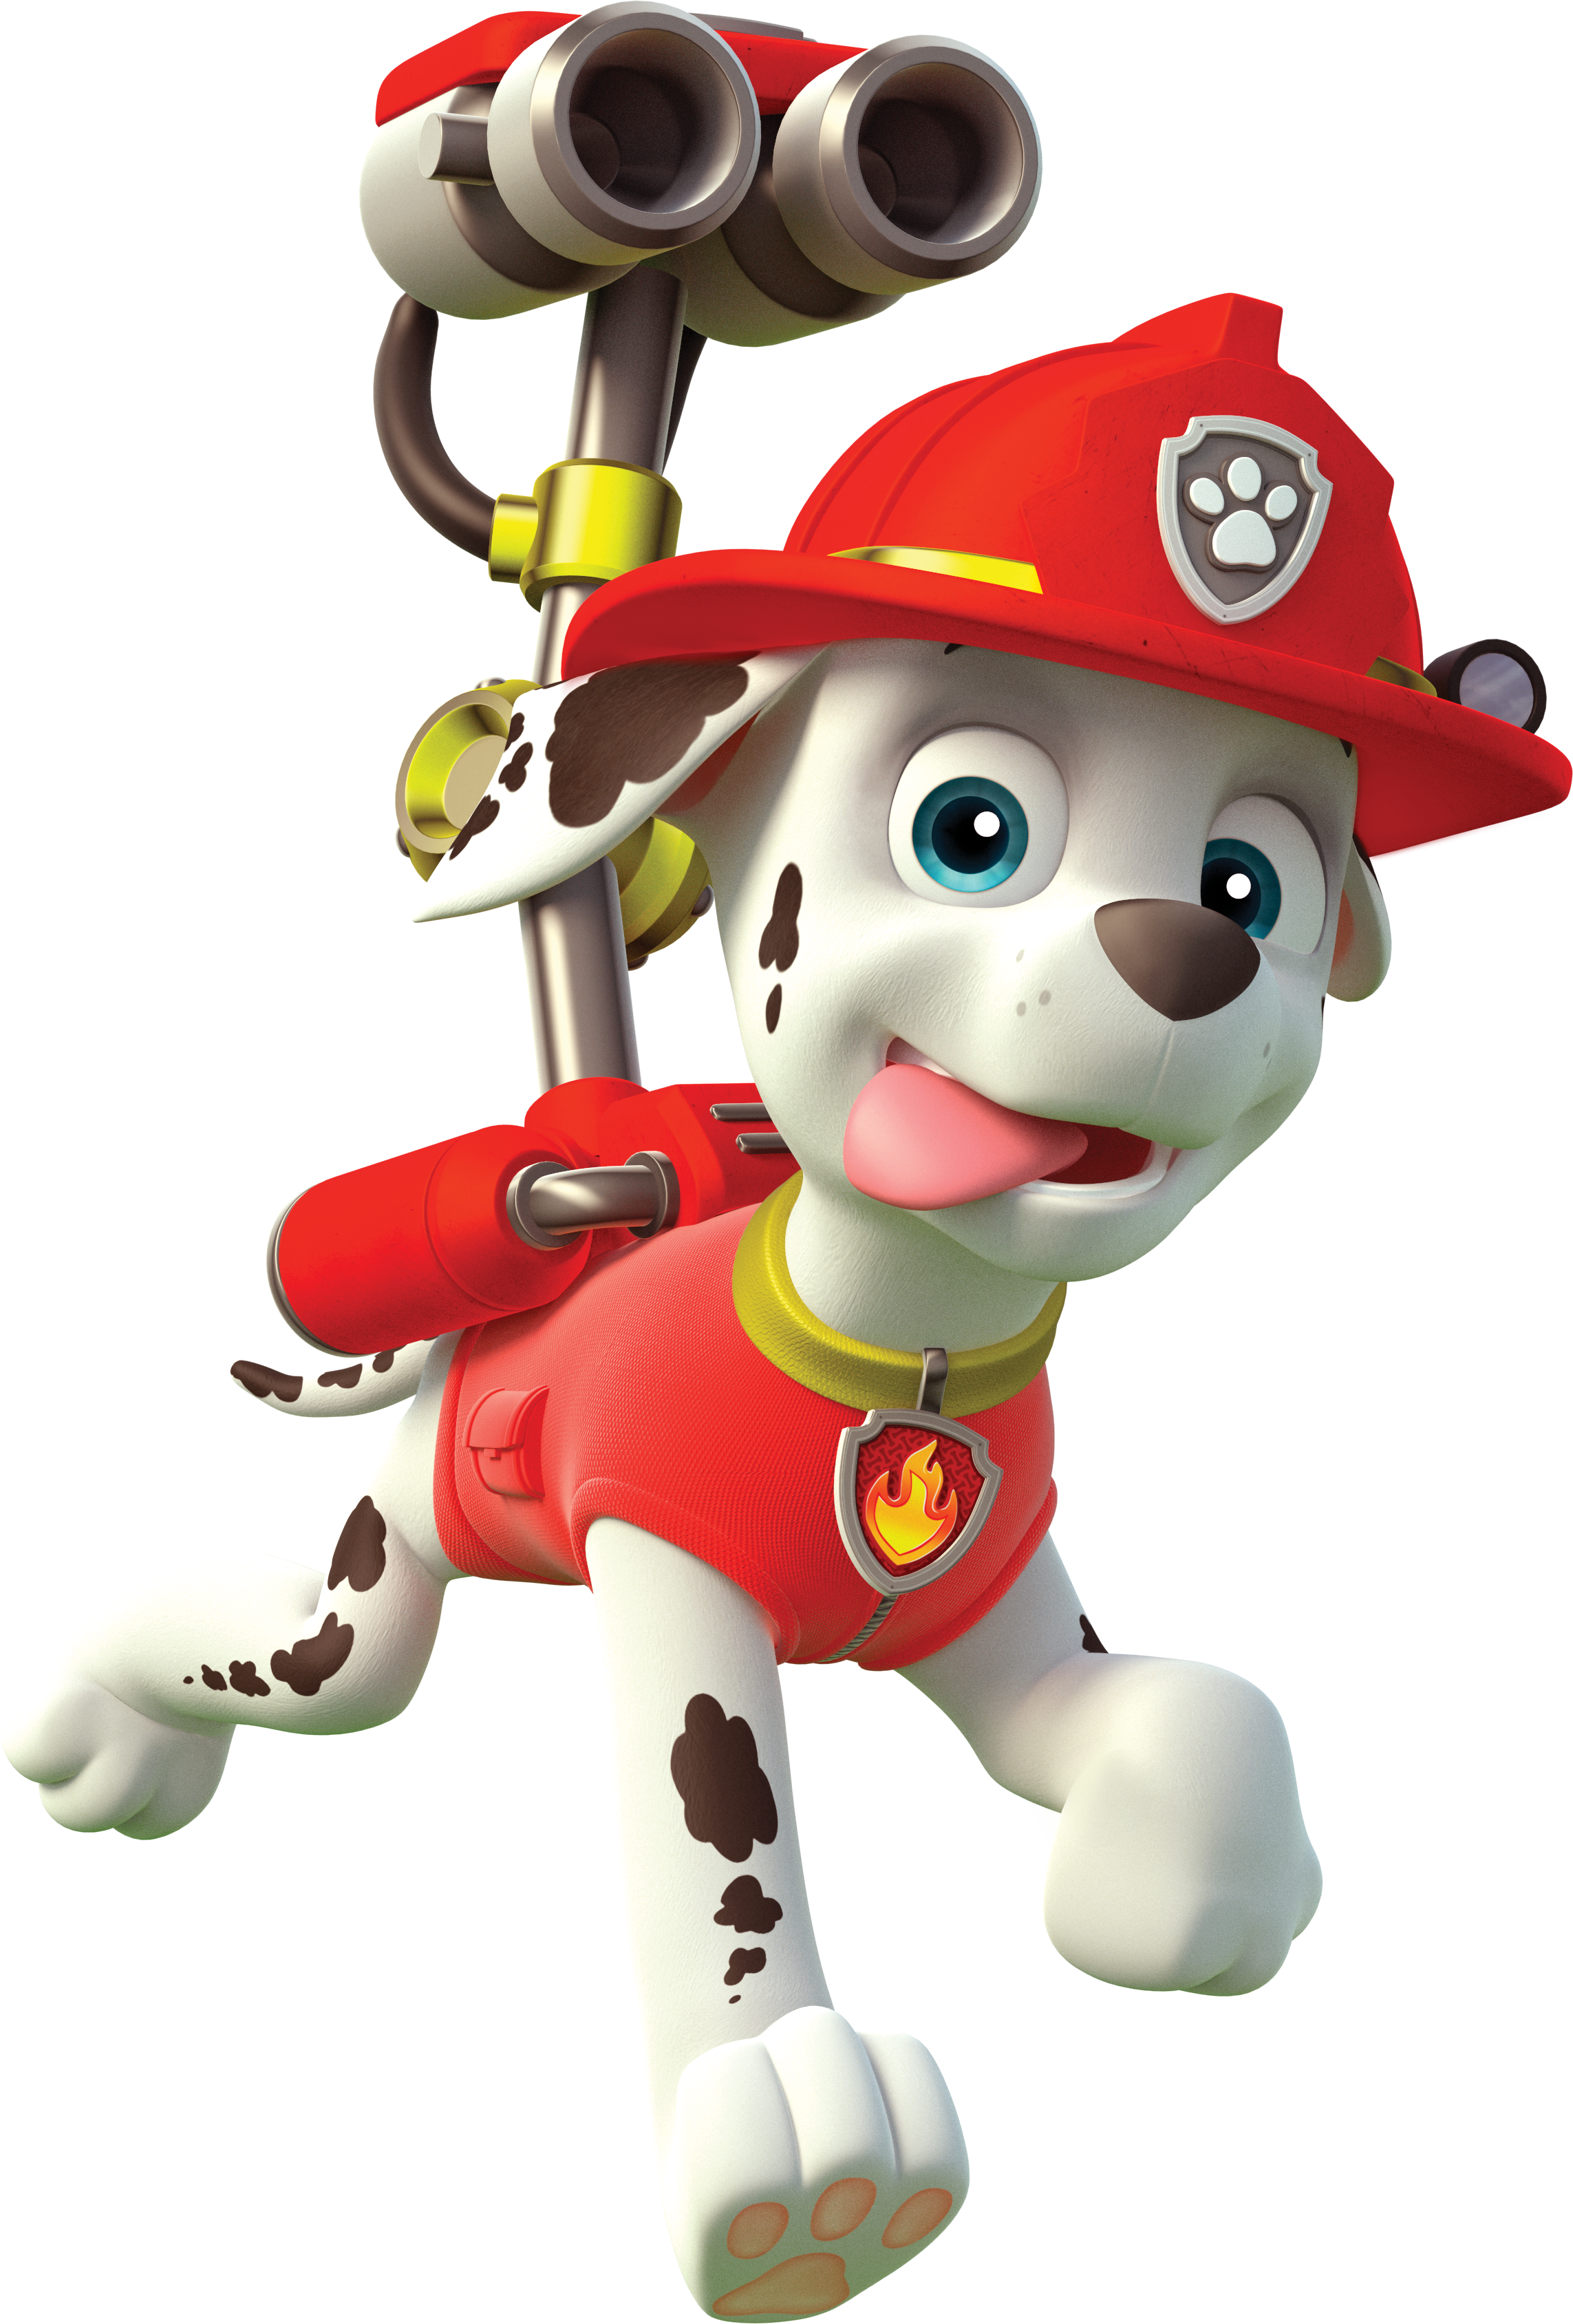 Paw patrol marshall clipart banner royalty free stock Image - PAW Patrol Marshall Running.png | PAW Patrol Wiki | Fandom ... banner royalty free stock